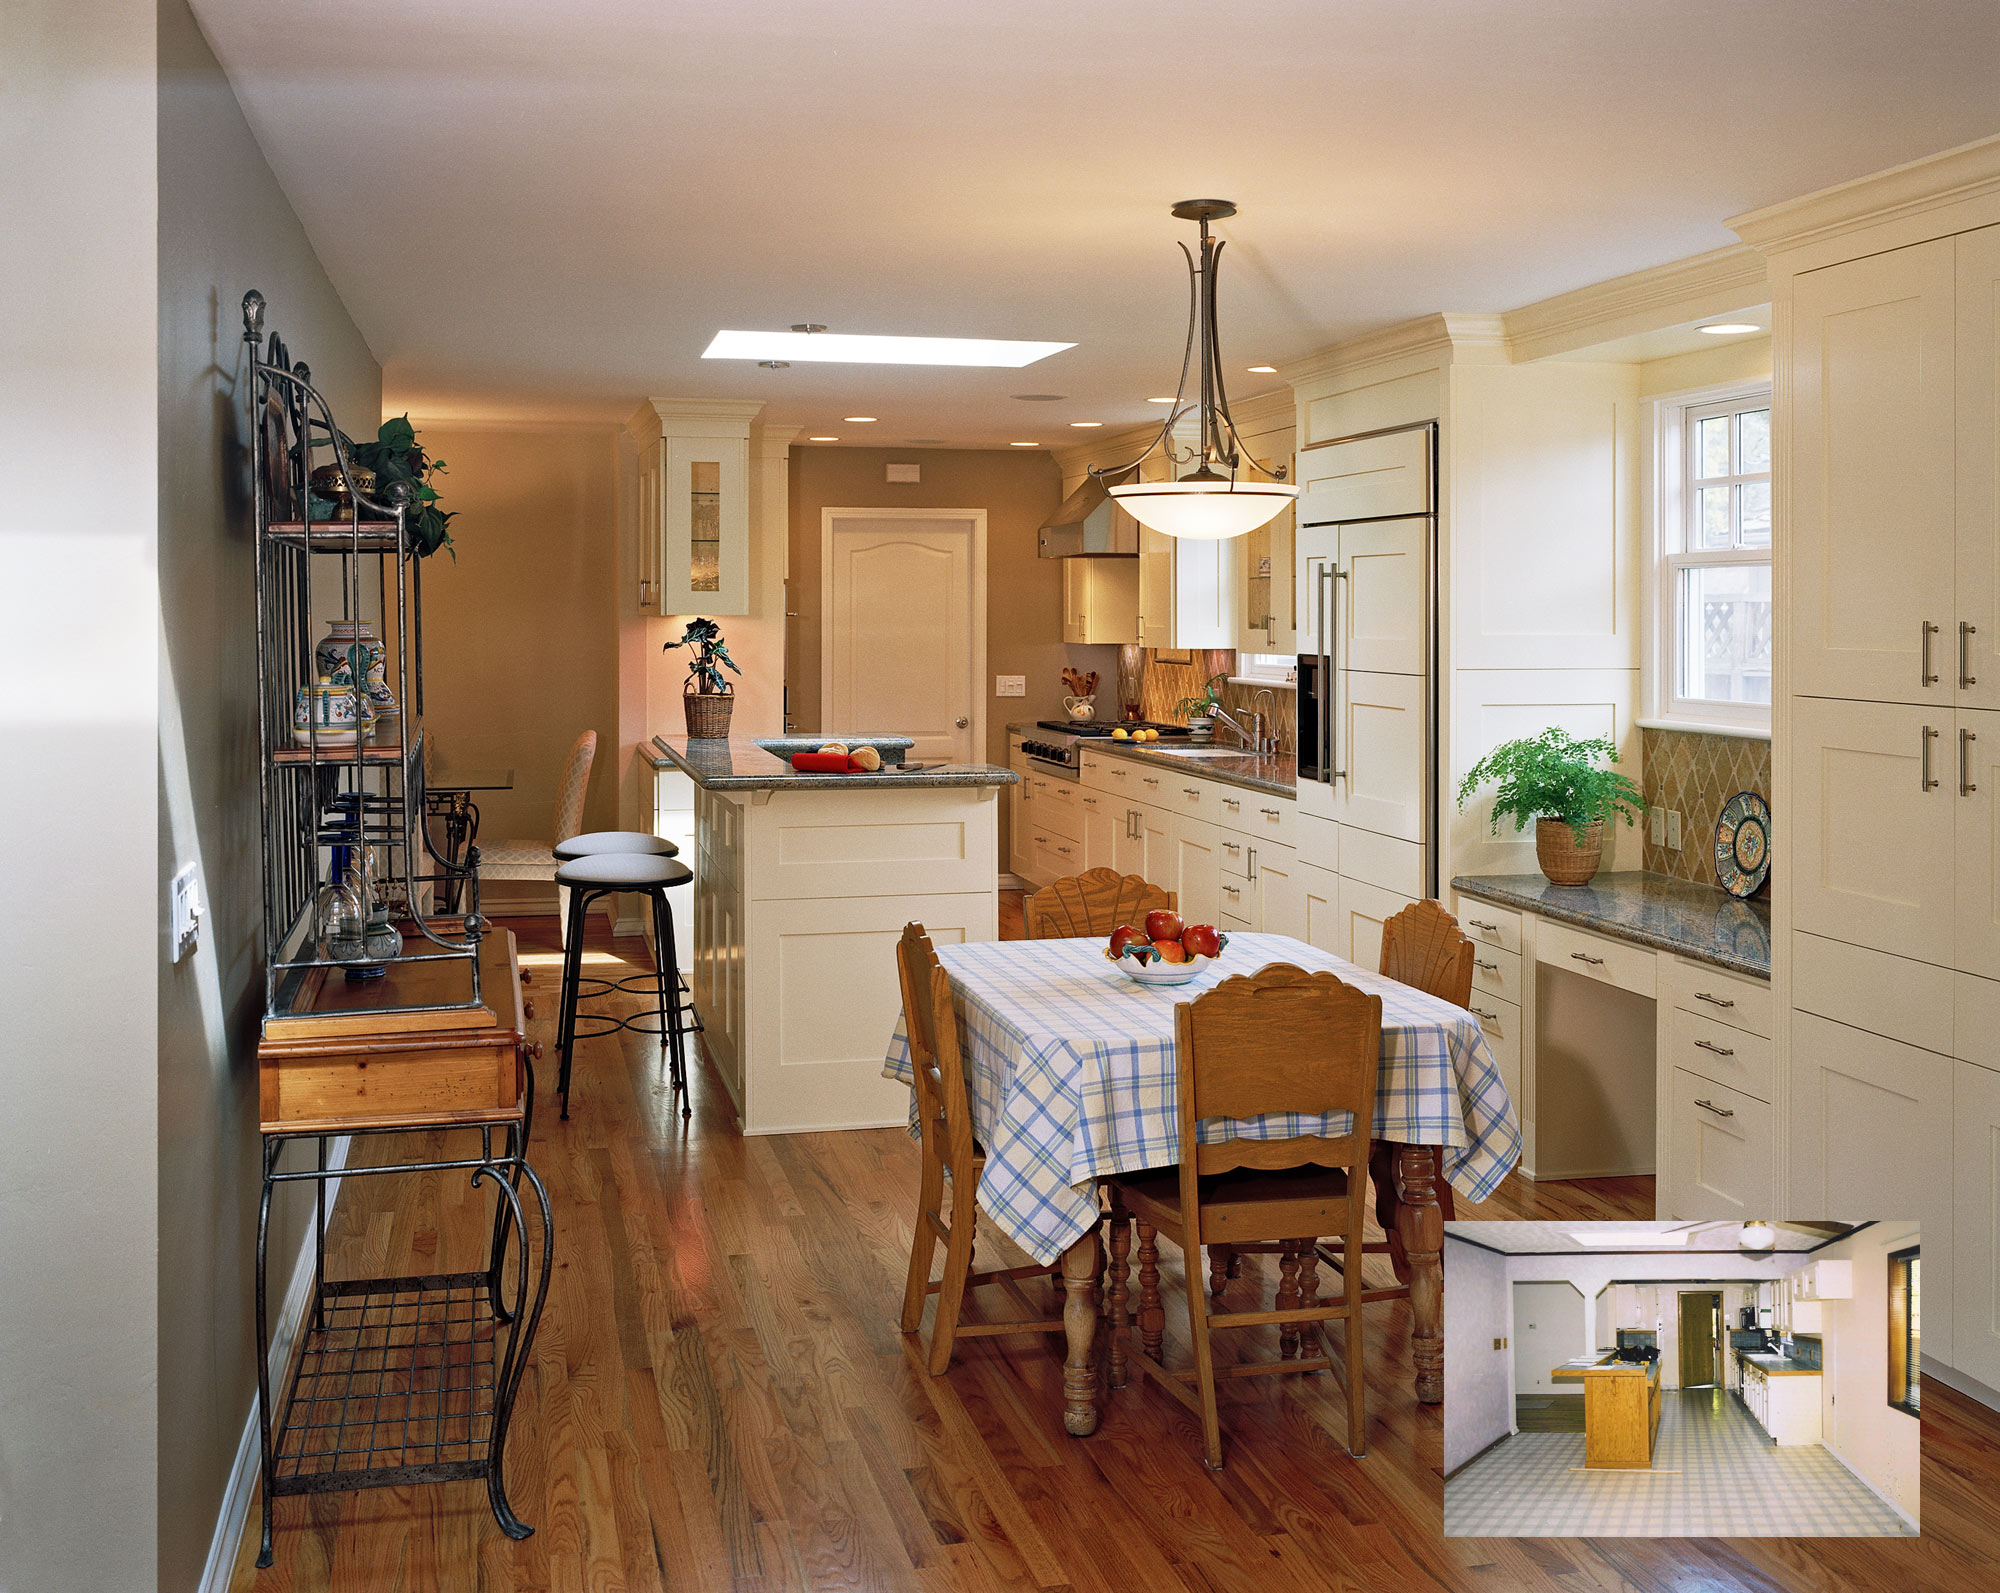 Kitchen and dining room before and after.jpg